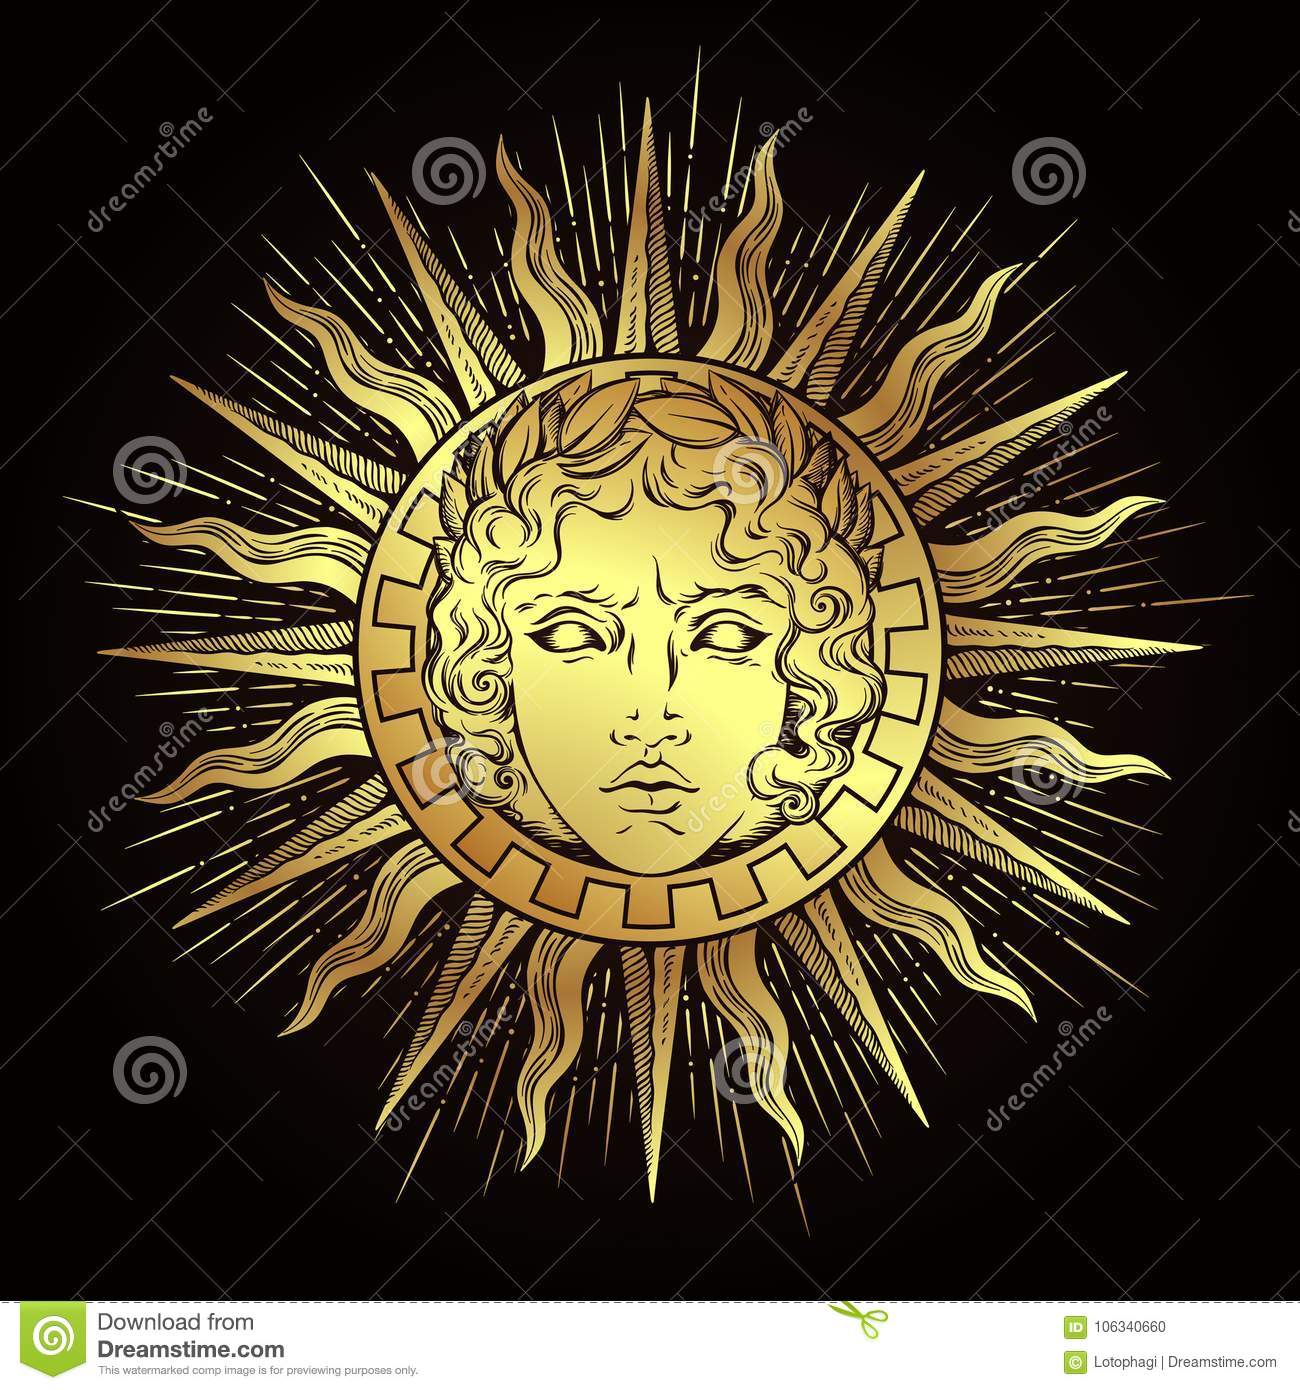 Hand drawn antique style sun with face of the greek and roman god hand drawn antique style sun with face of the greek and roman god apollo flash tattoo or print design vector illustration medieval logo buycottarizona